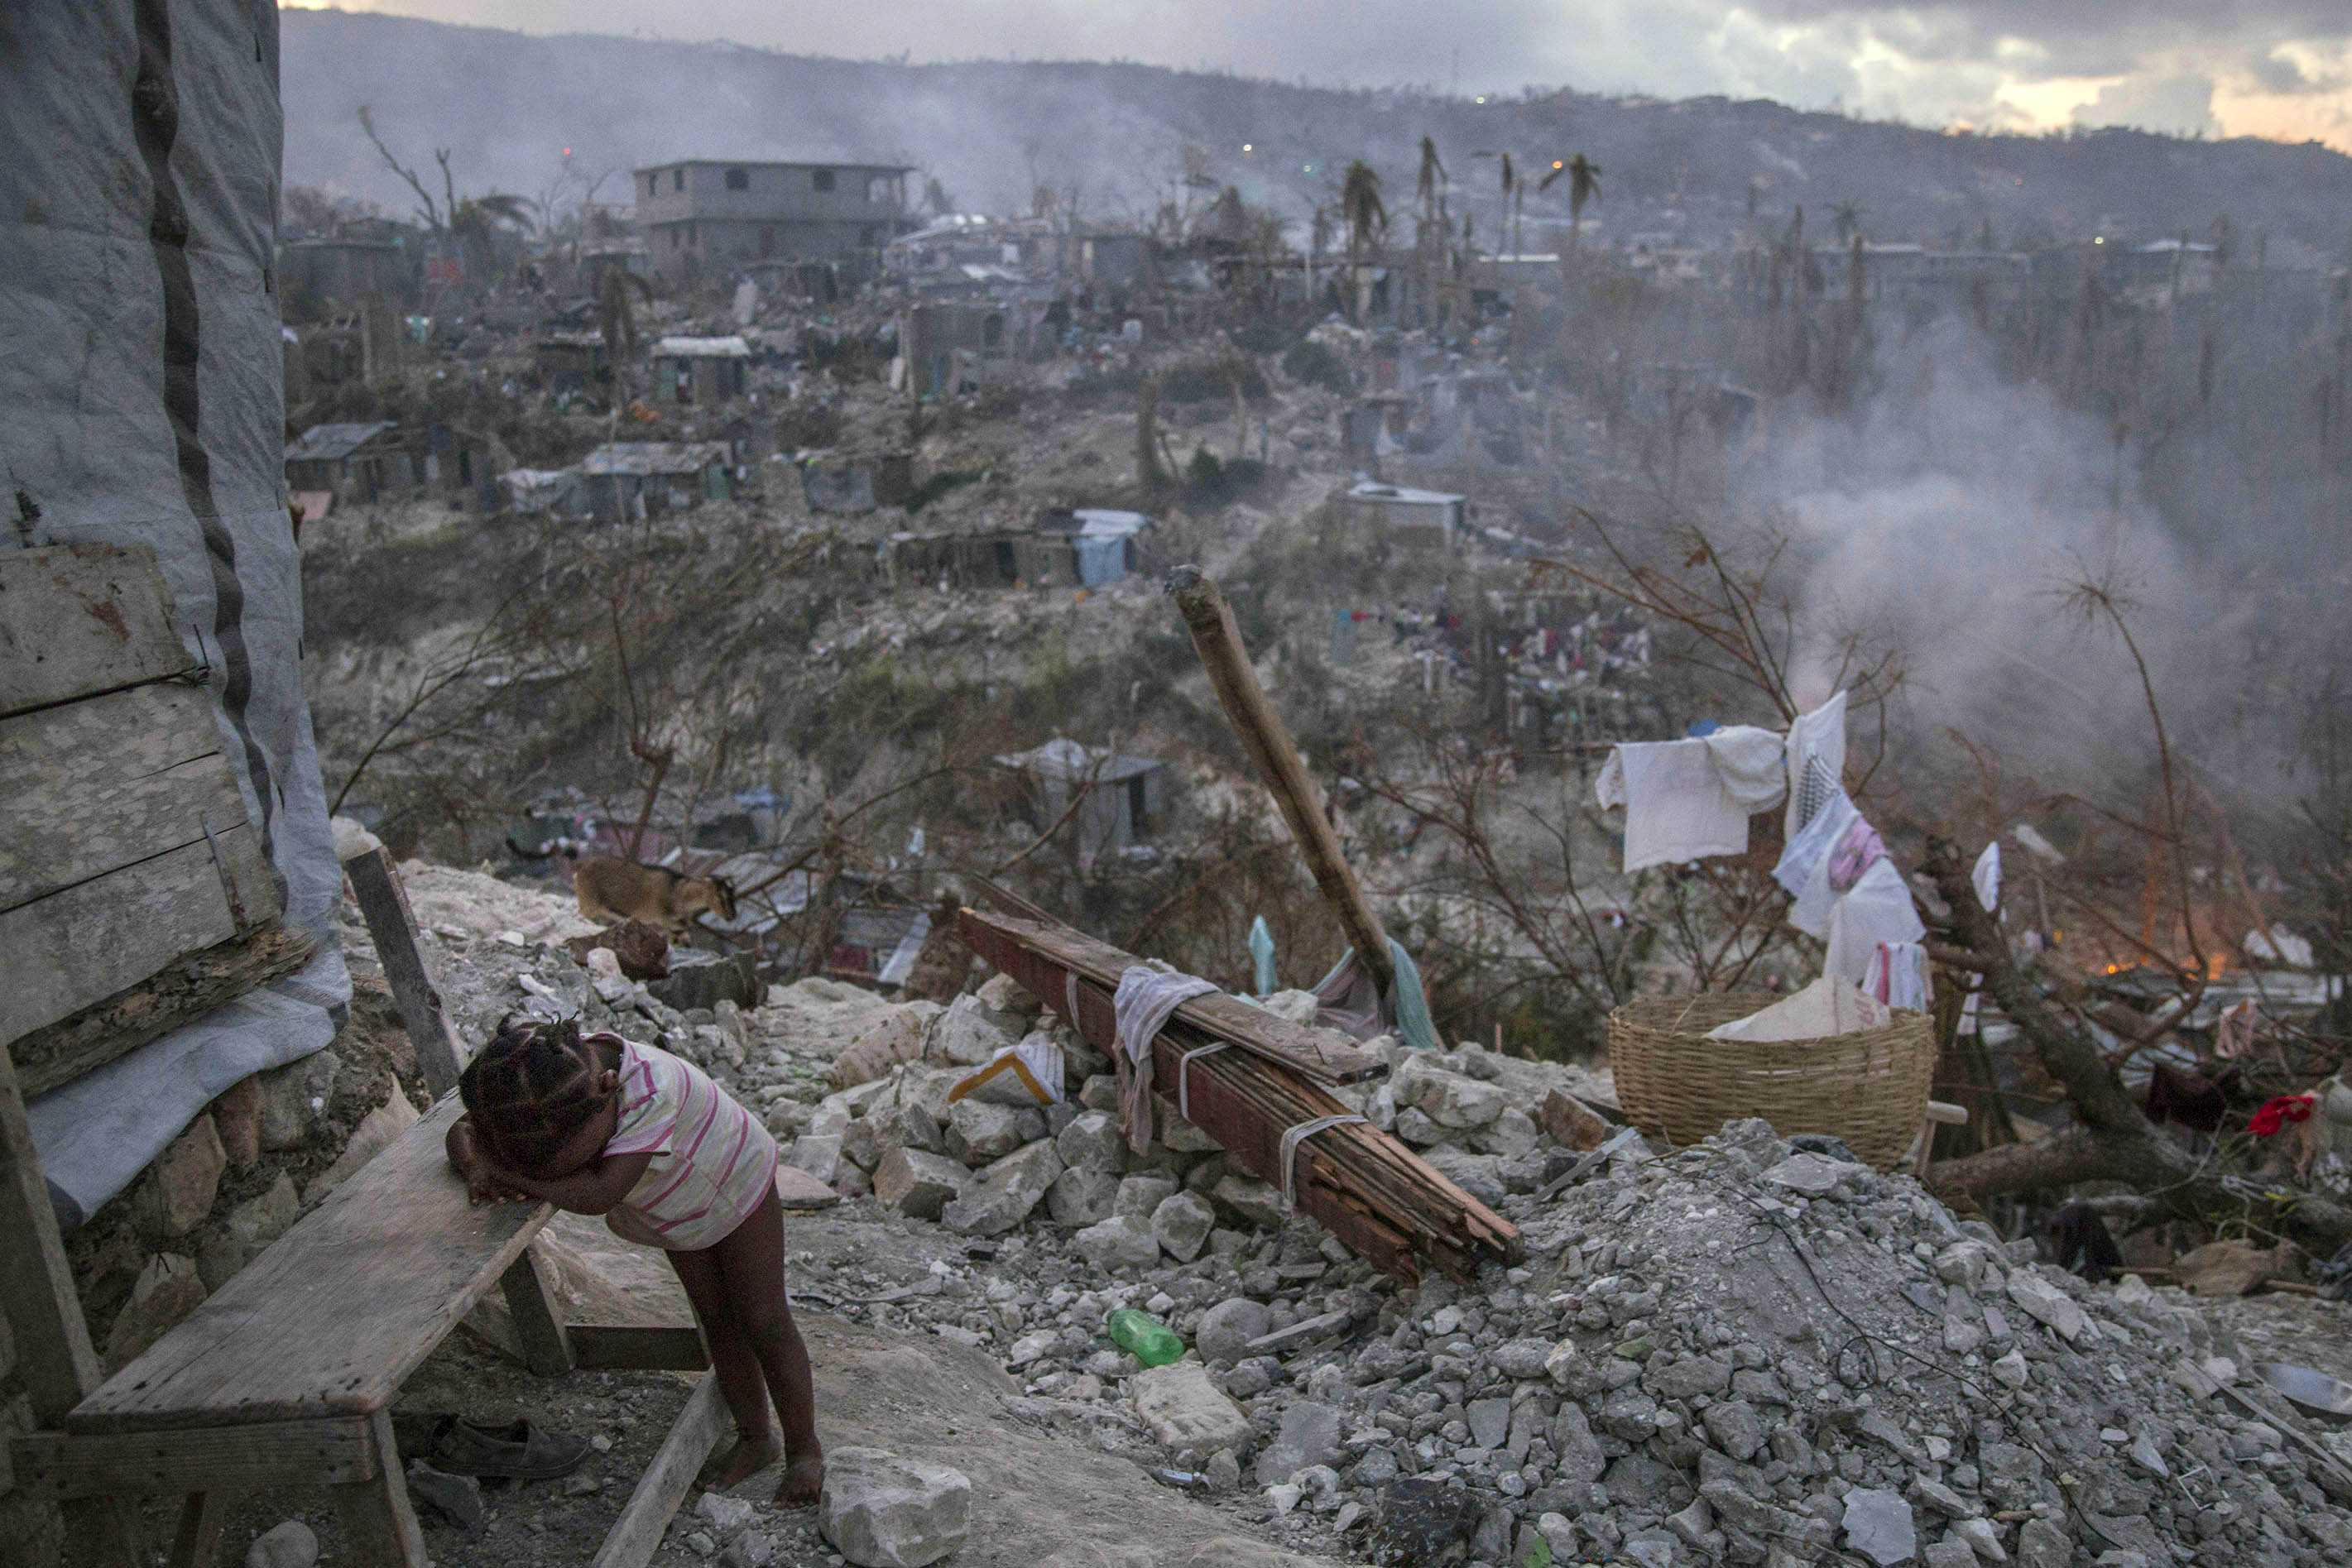 On 10 October 2016 in Jérémie, Haiti, a toddler rests near collapsed homes on top of a hill.  One week after Hurricane Matthew, as schools re-open across the country, more than 100,000 children will be missing out on learning after their schools were either damaged or converted into shelters.  Hurricane Matthew passed over Haiti on Tuesday October 4, 2016, with heavy rains and winds. While the capital Port au Prince was mostly spared from the full strength of the class 4 hurricane, the western area of Grand Anse, however was in the direct path. The cities of Les Cayes and Jeremie received the full force sustaining wind and water damage across wide areas. Coastal towns were severely damaged as were many homes in remote mountainous regions. International relief efforts are underway to provide food water and shelter to the people affected by the storm.  An estimated 500,000 children live in the Grande Anse Department and Grand South Department in southern Haiti, the areas worst hit by Hurricane Matthew.  UNICEF had prepositioned emergency supplies with national authorities to reach up to 10,000 people.  On 8 October, six water trucks arrived in Jeremie and Les Cayes, the respective capital cities within the Departments.  Additional water and sanitation supplies, such as water purification tablets, water bladders and plastic sheeting, have been dispatched to the most affected departments in the westernmost tip of Haiti.  As of 10 October, UNICEF delivered blankets, buckets, water purifying equipment and cholera diagnostic kits.